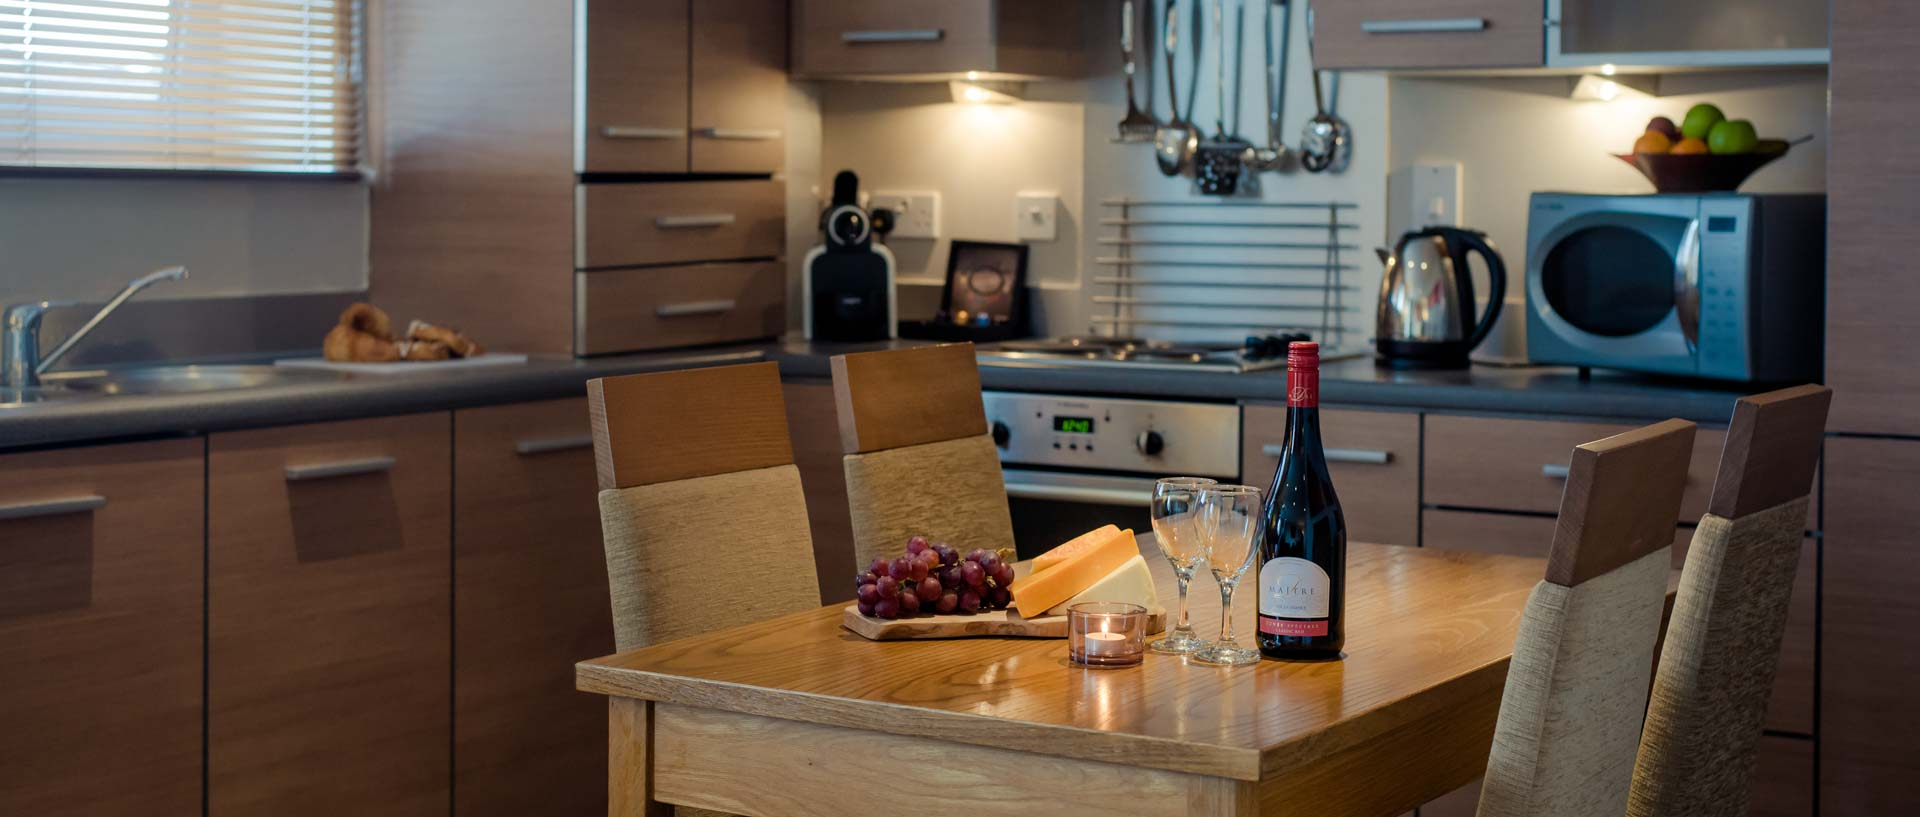 PREMIER SUITES Newcastle modern kitchen and dining area